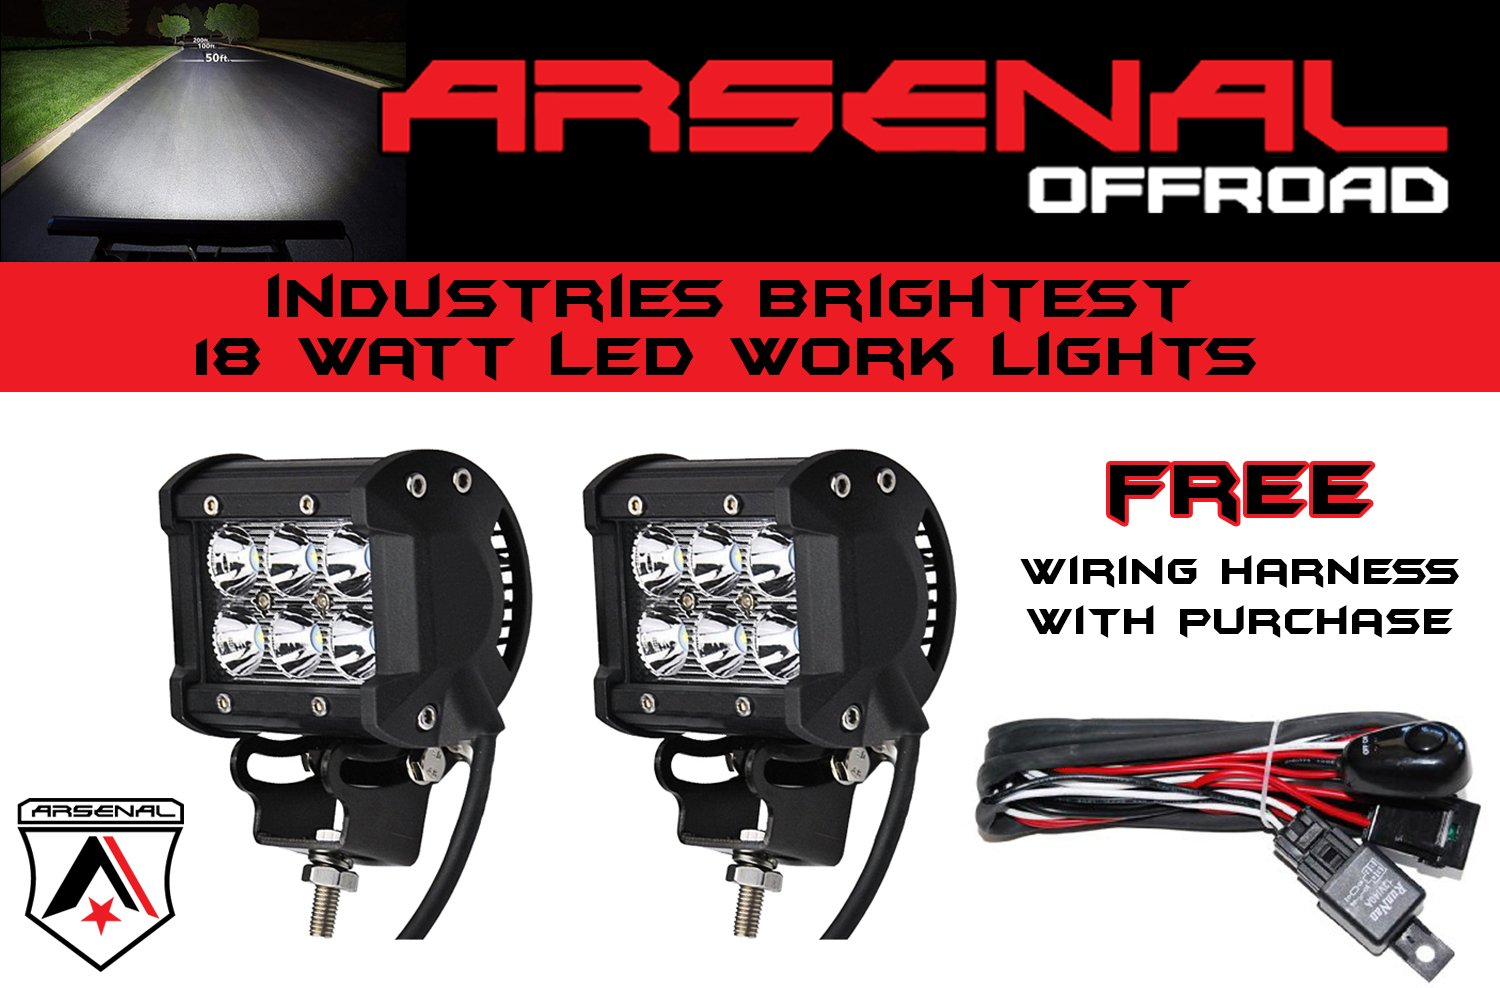 Brightest Off Road Lights Wiring 1 2x 4 Arsenal Offroad Tm 18w 6 Cree Led On The Market